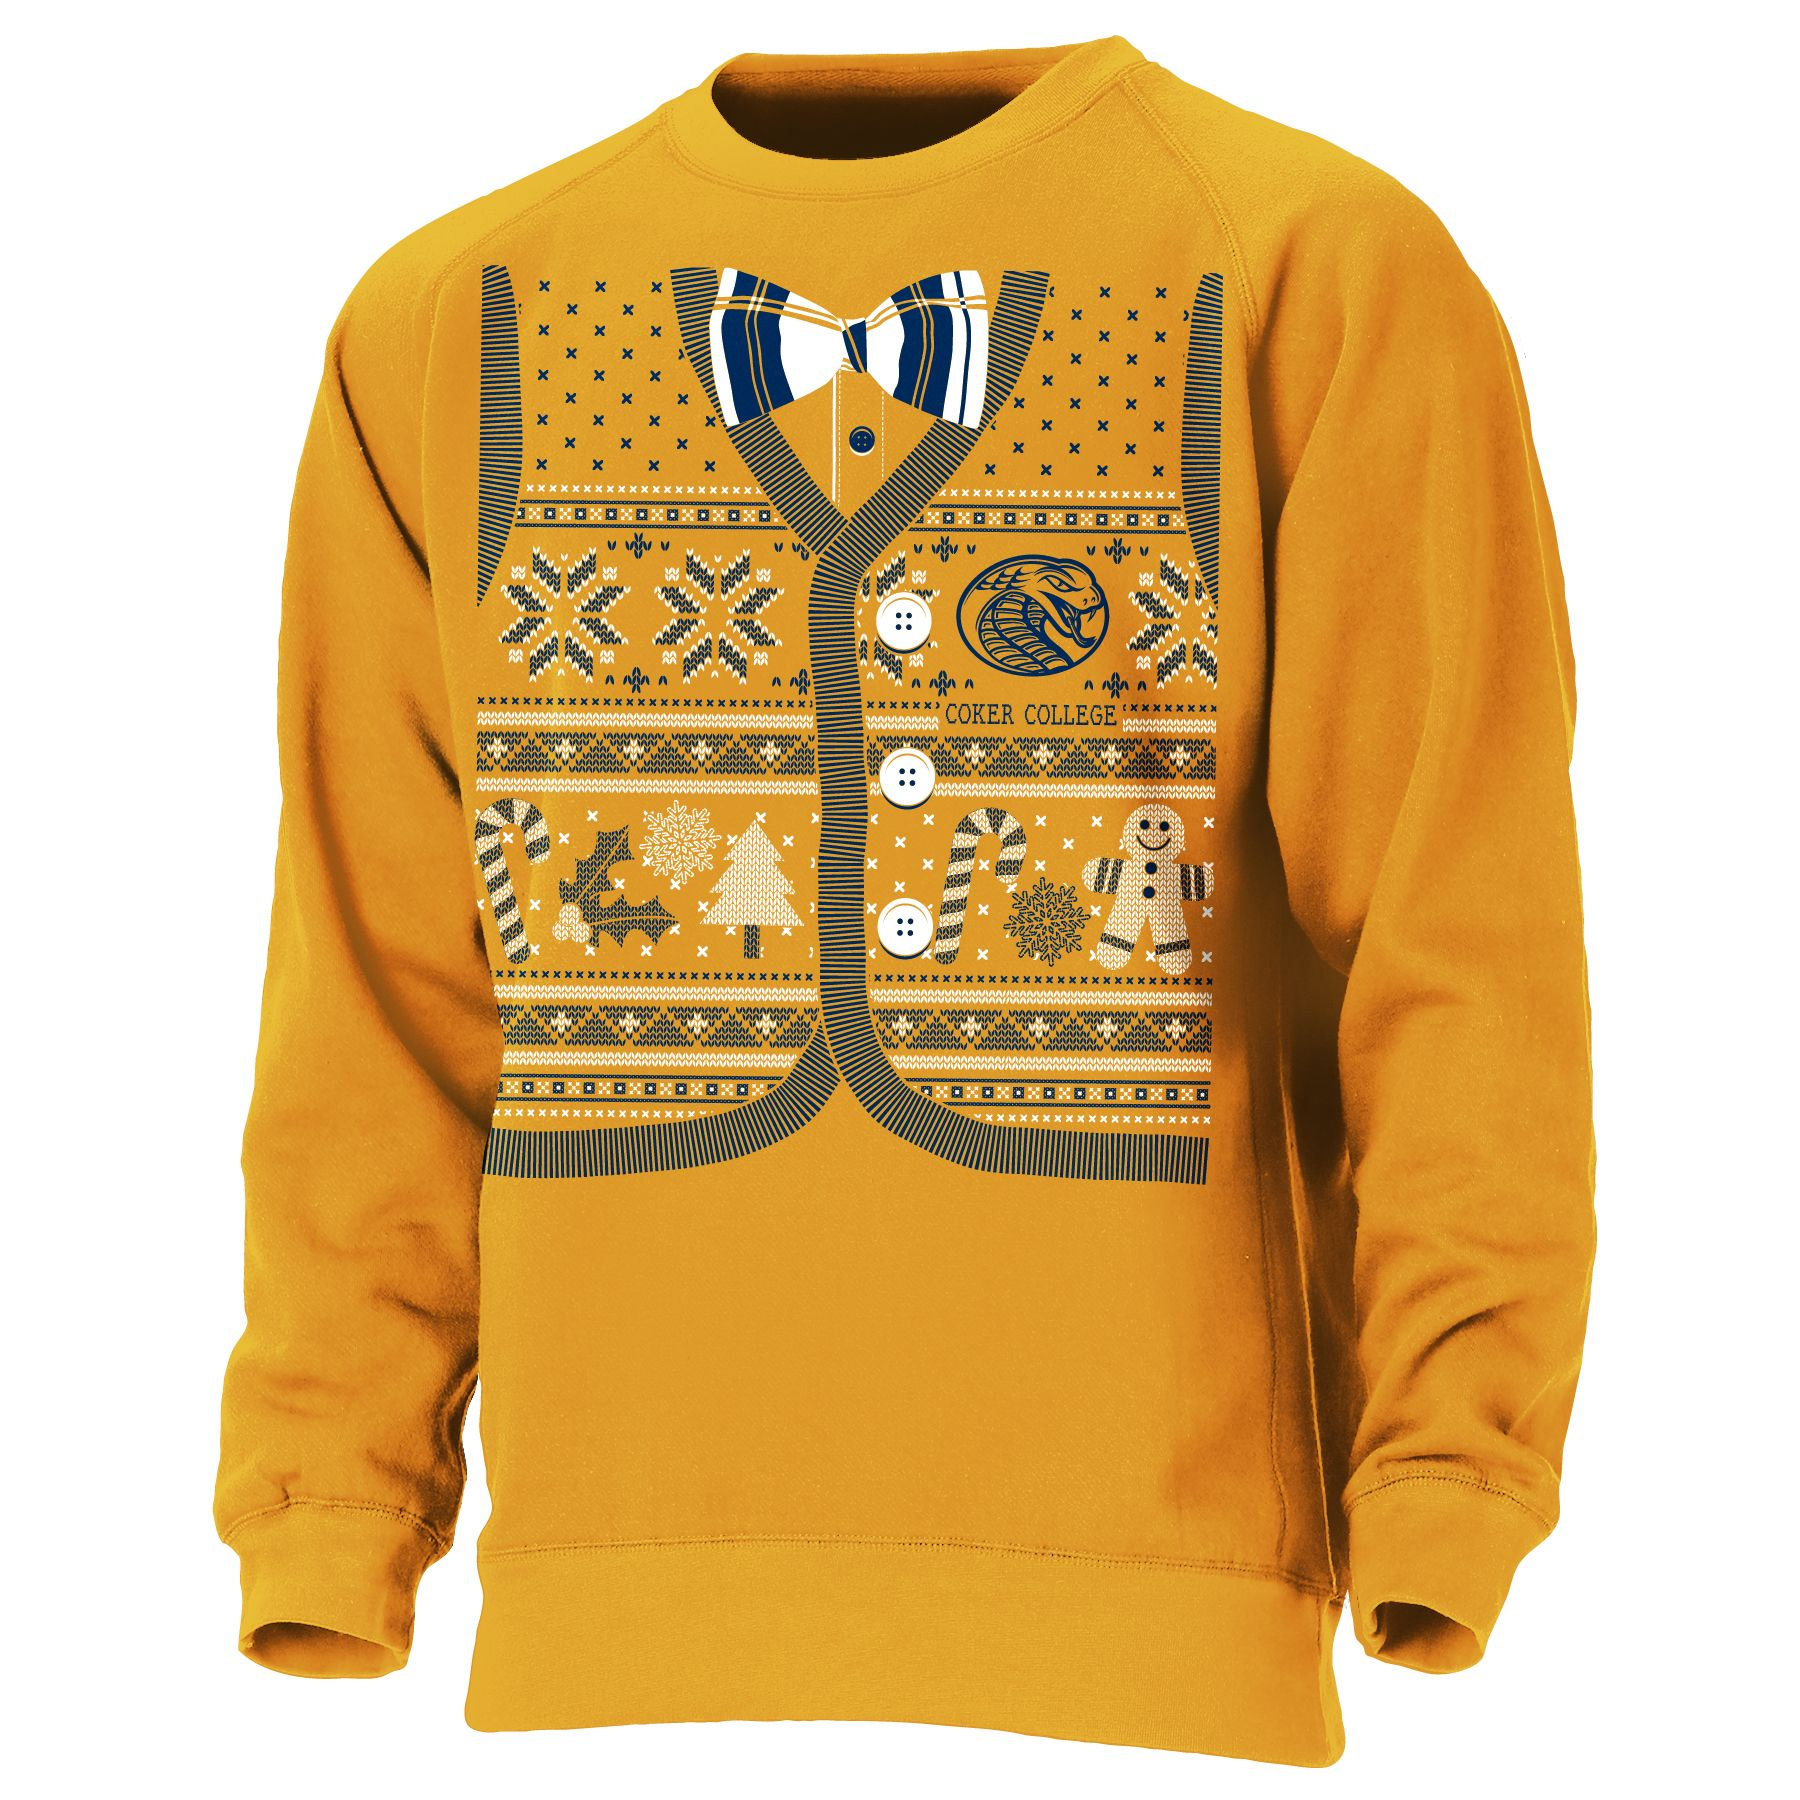 Shirt UGLY HOLIDAY SWEATER CREW NECK